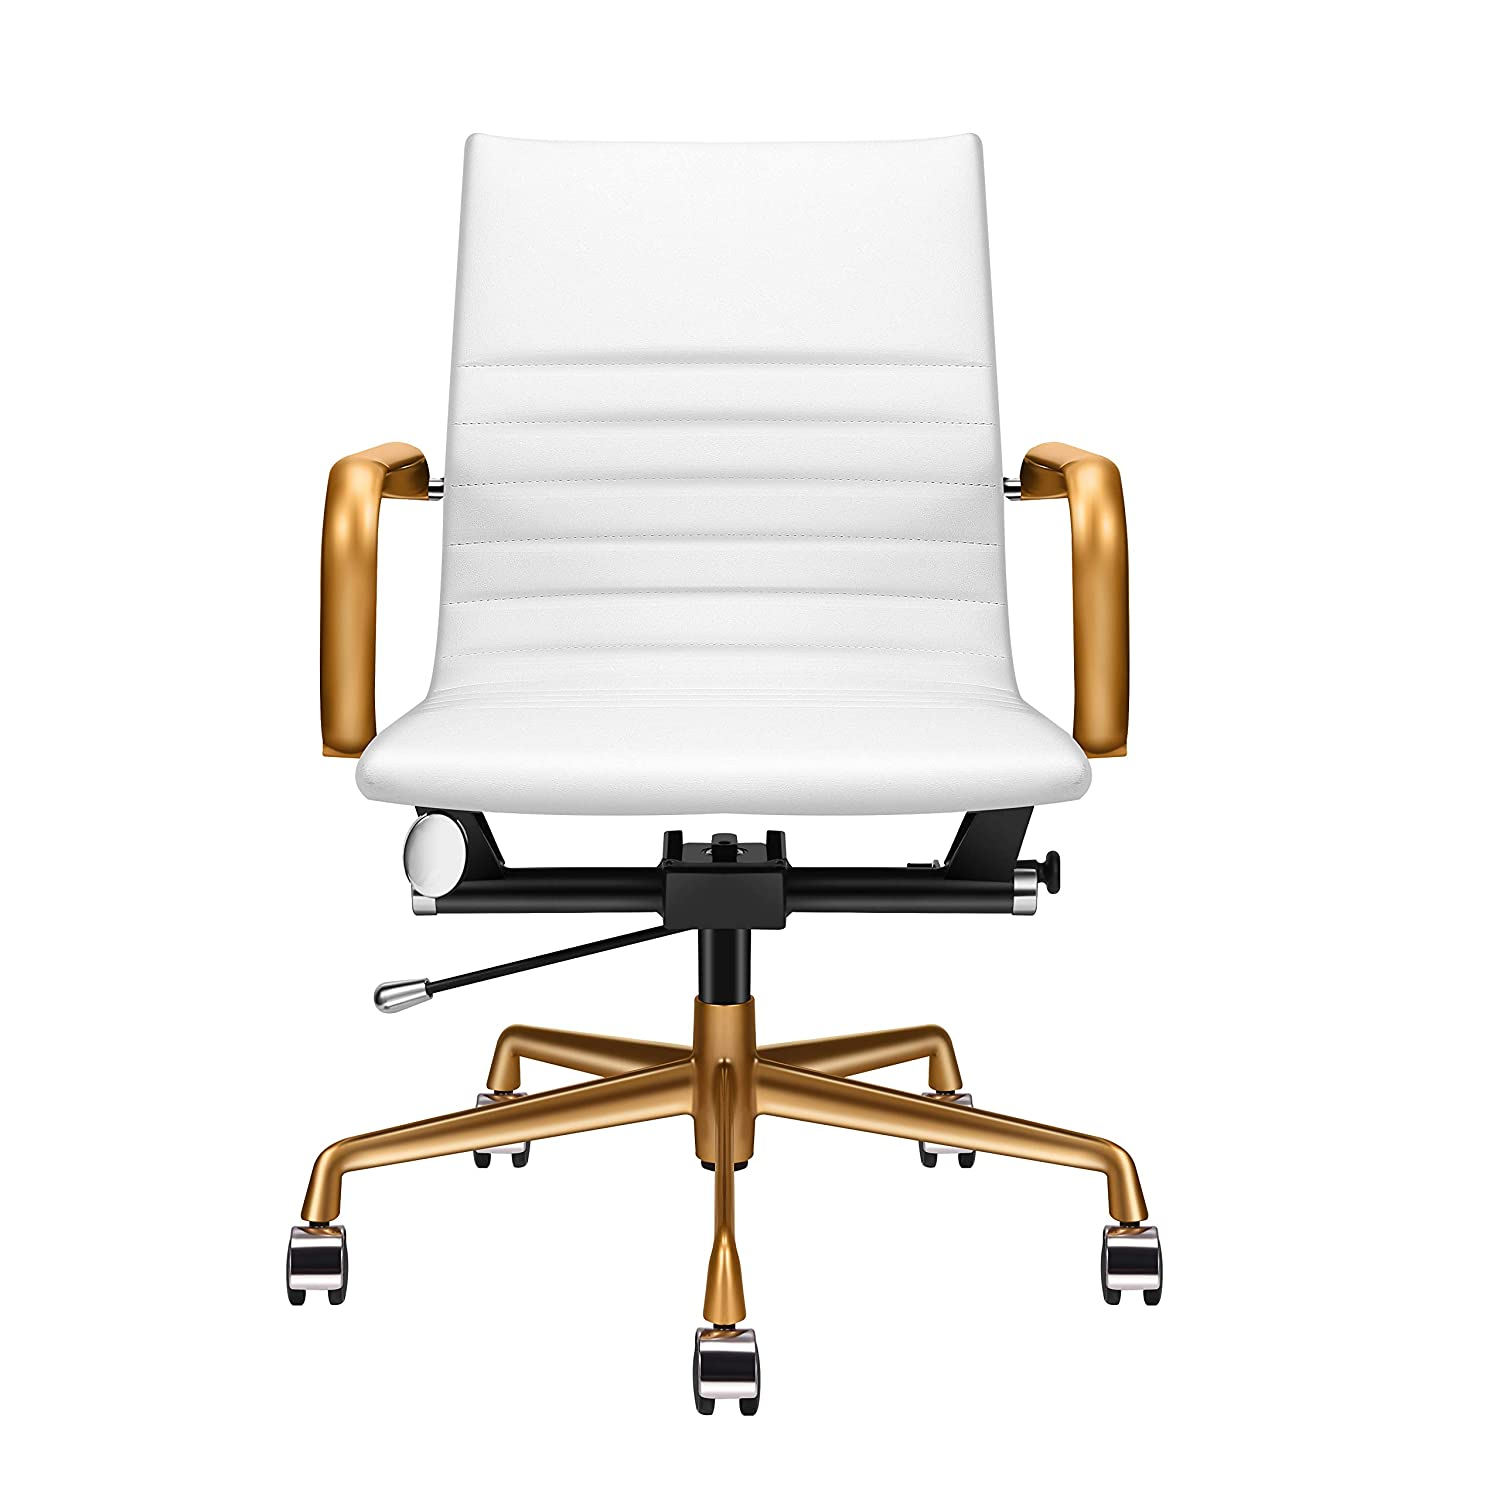 Amazoncom Luxmod White And Gold Desk Chair Home Office Chair